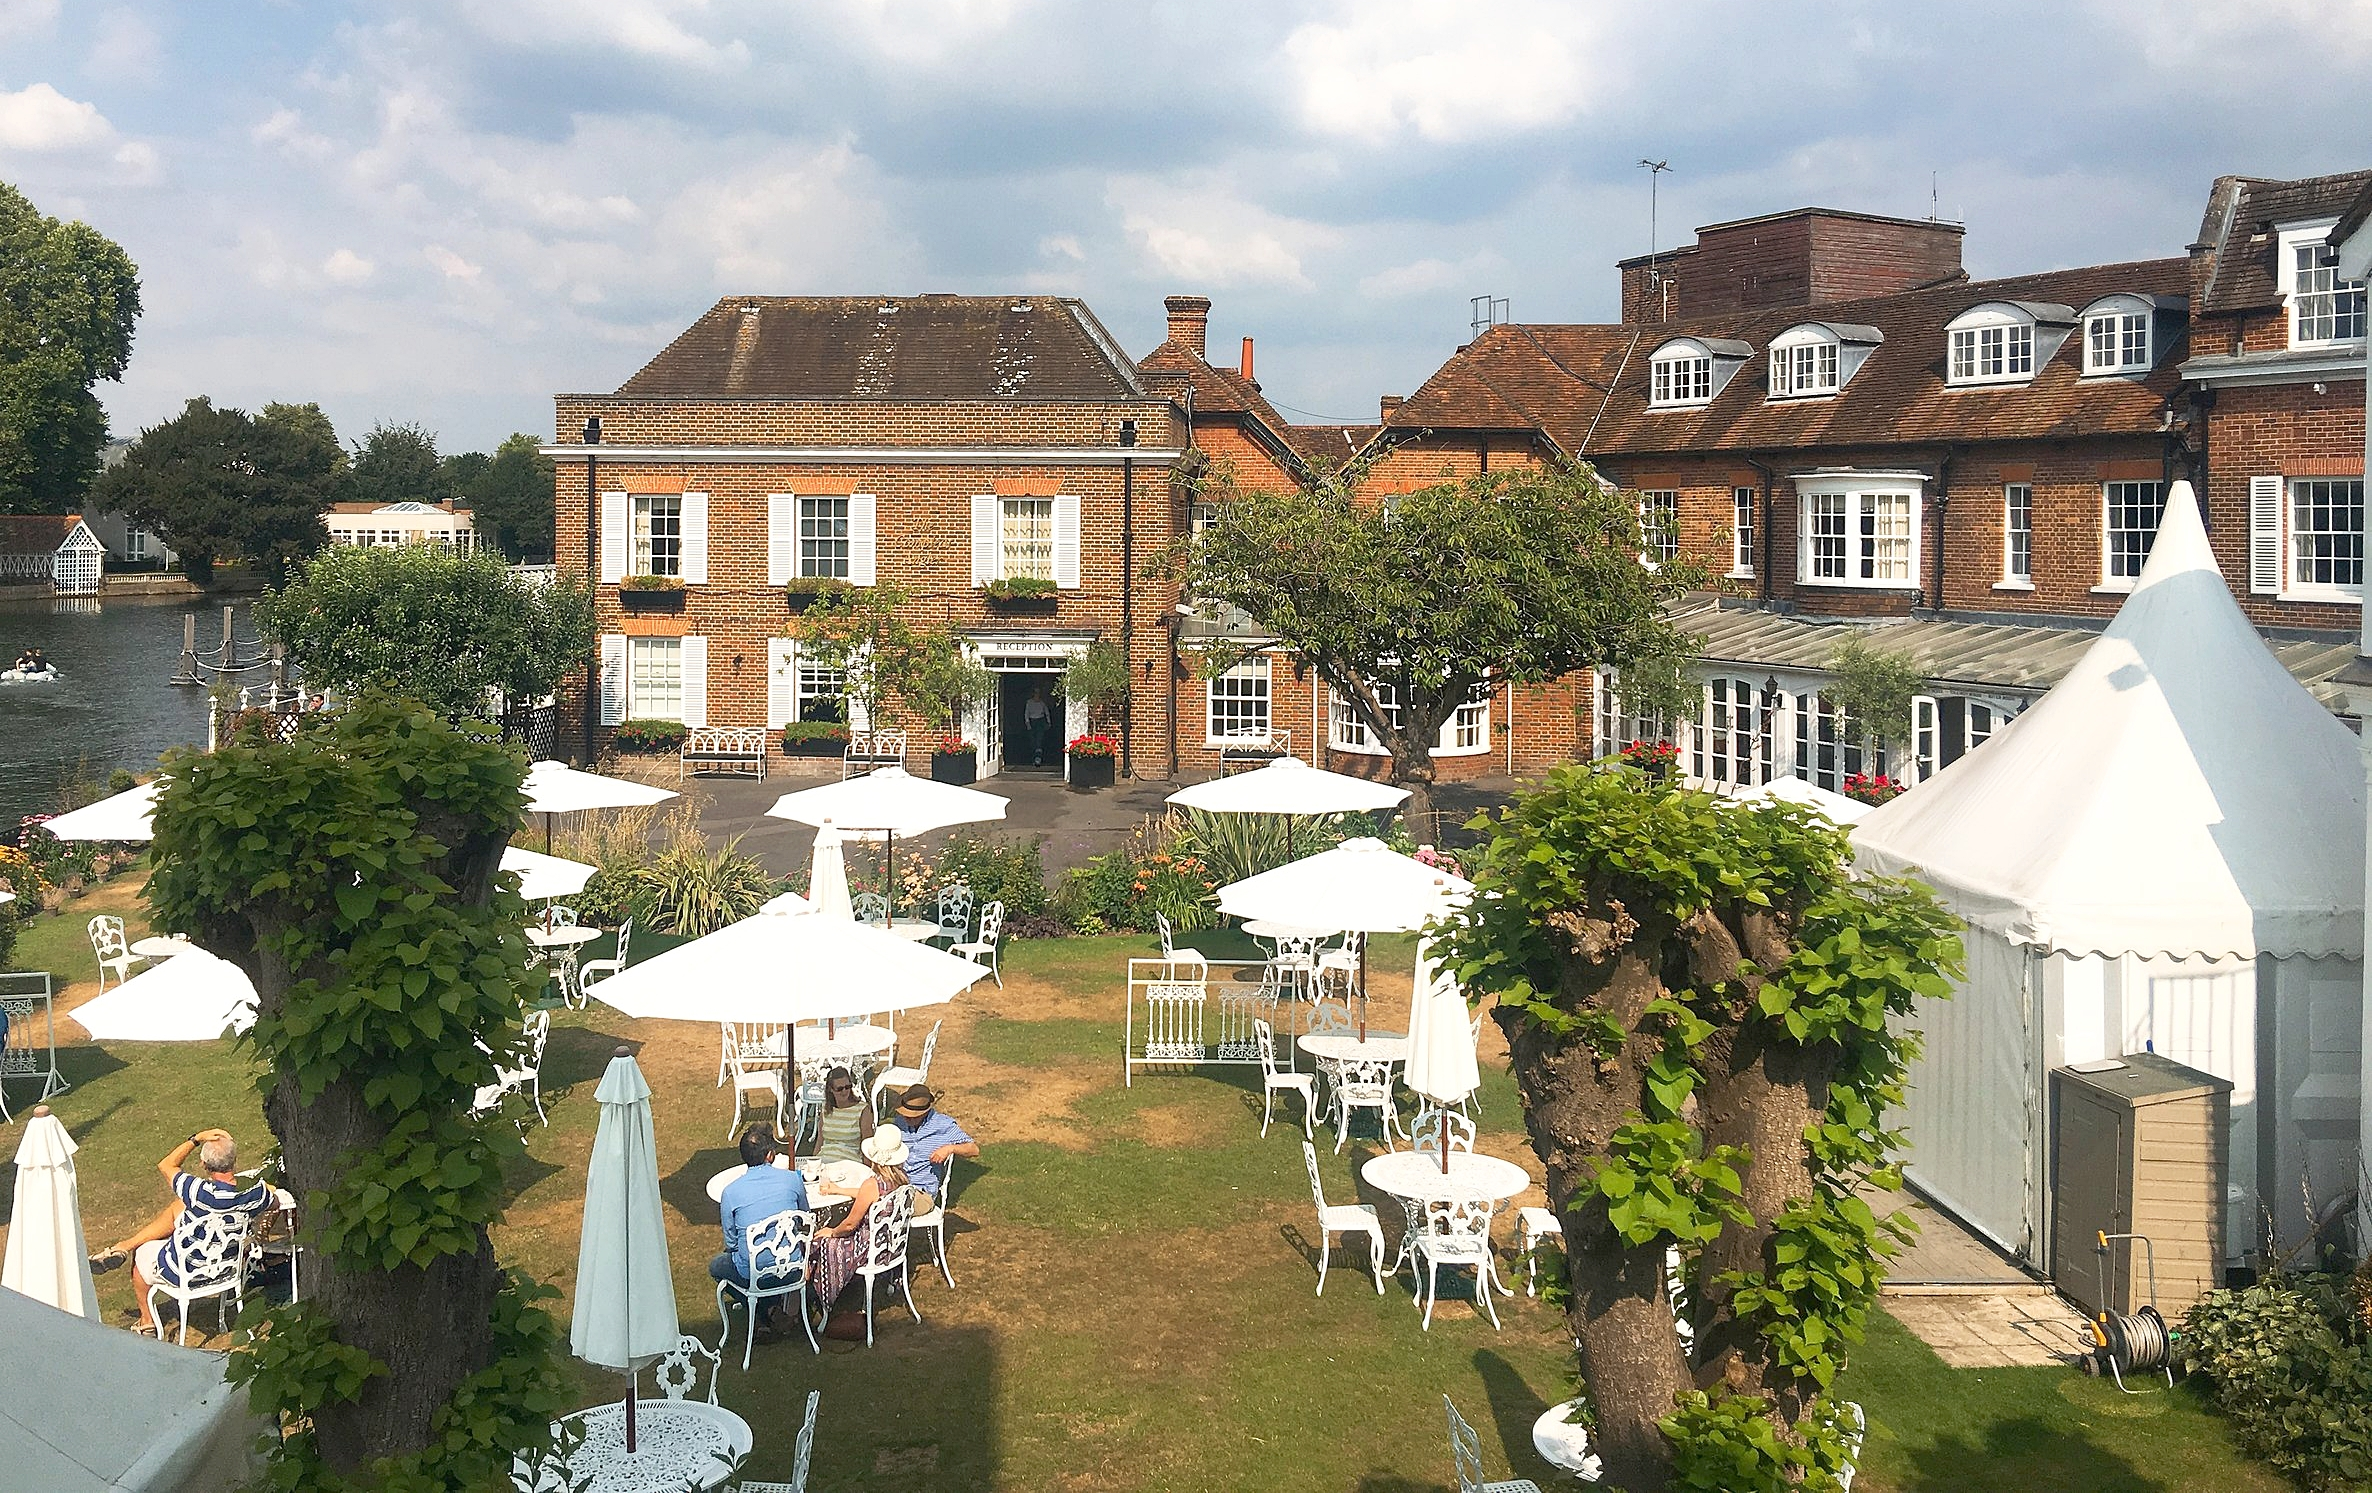 Macdonald Compleat Angler Hotel Review, Marlow, Travel blog